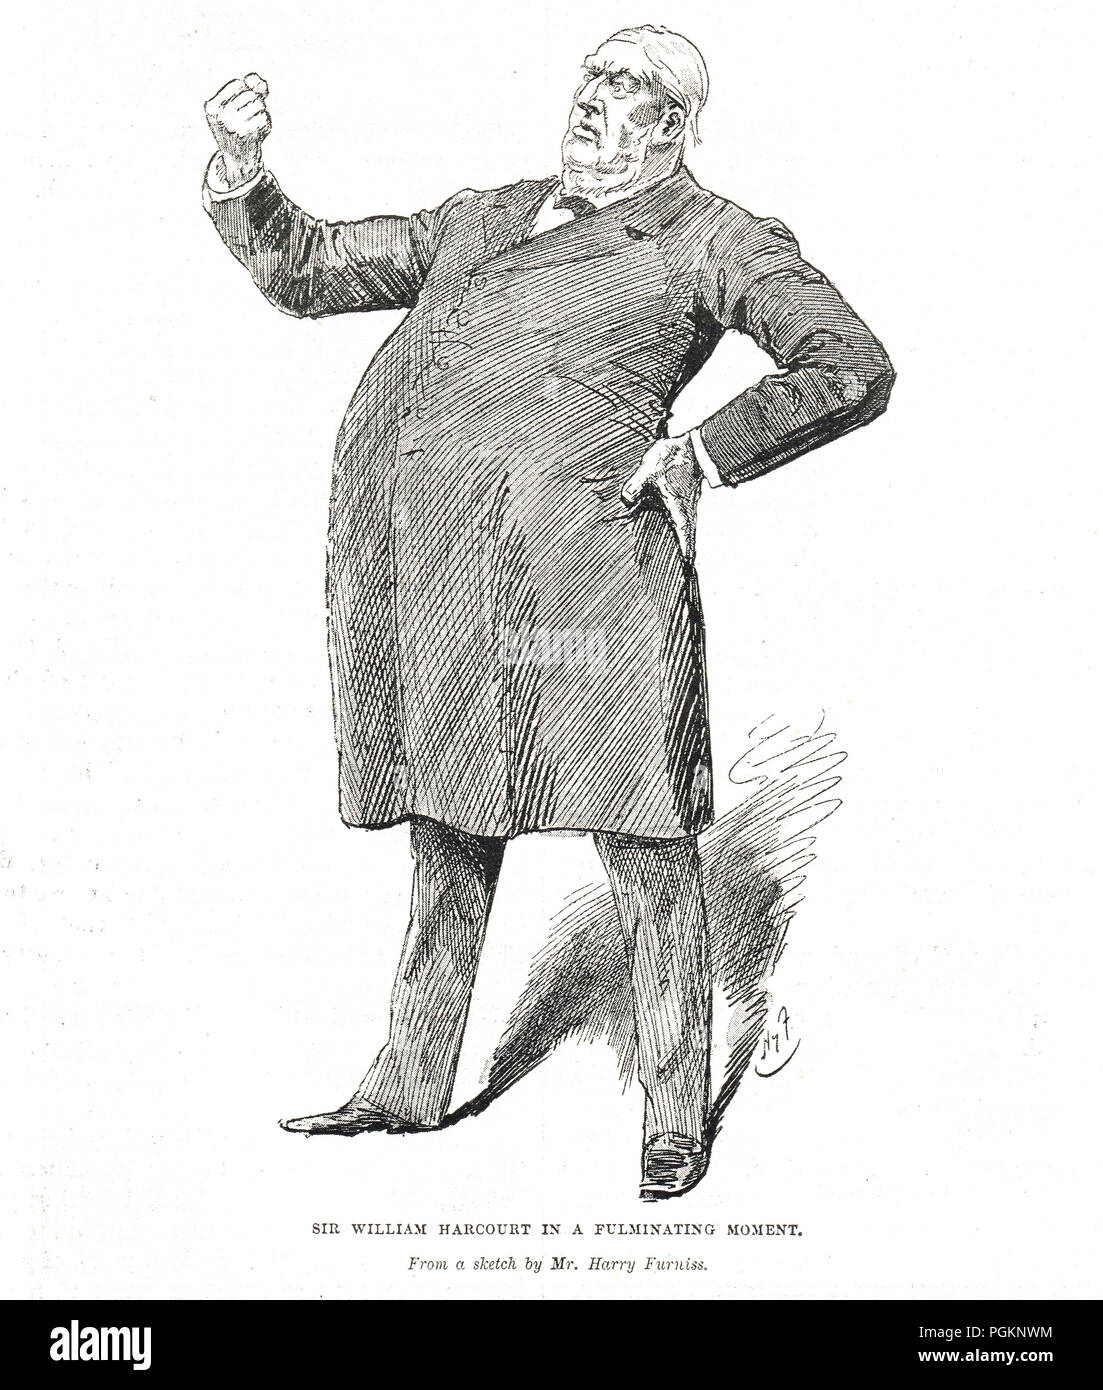 Sir William Harcourt in a fulminating moment by Harry Furniss - Stock Image